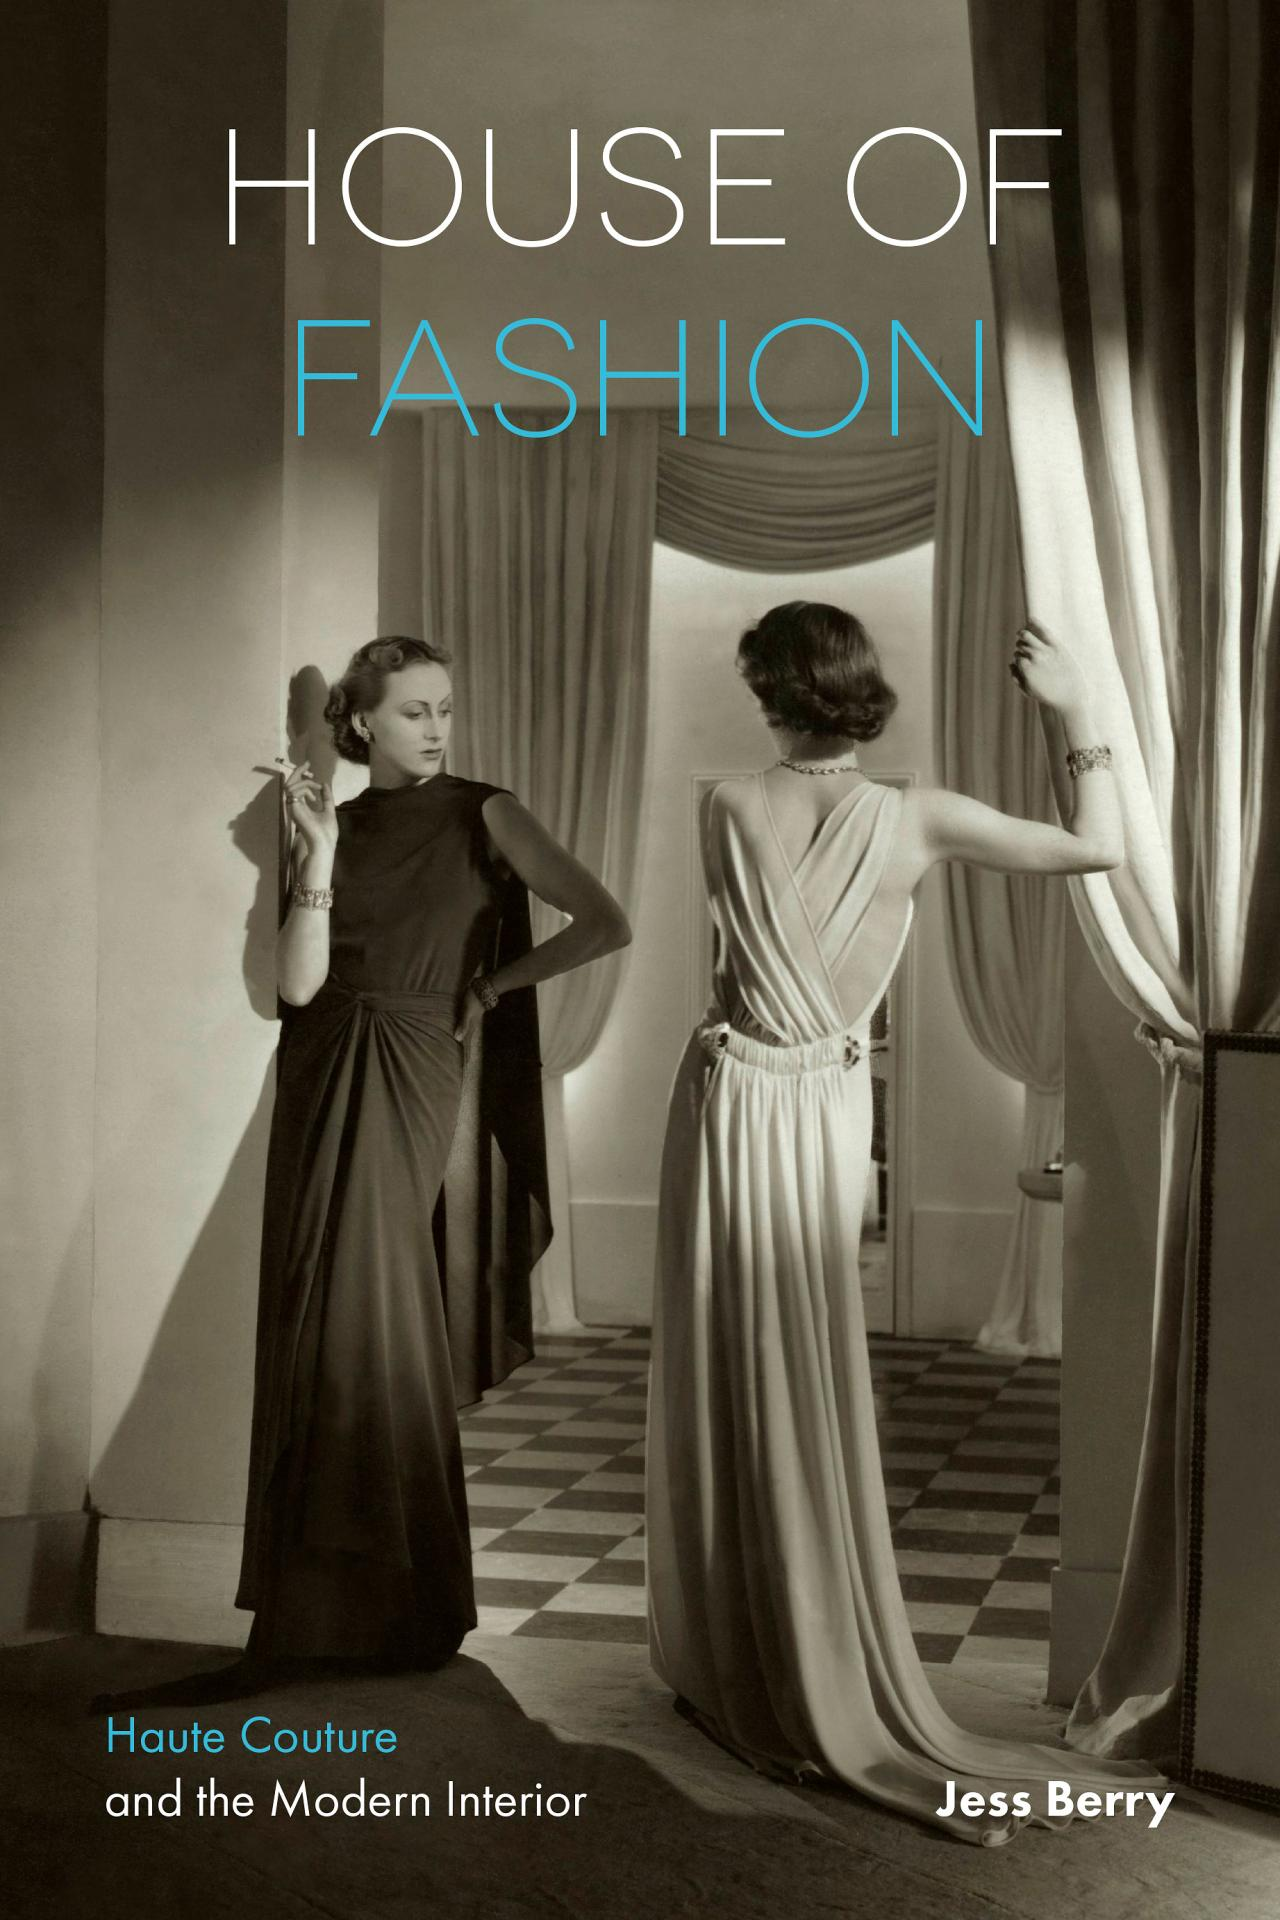 House of Fashion: Haute Couture and the Modern Interior (2018) by Jess Berry Published by Bloomsbury Visual Arts